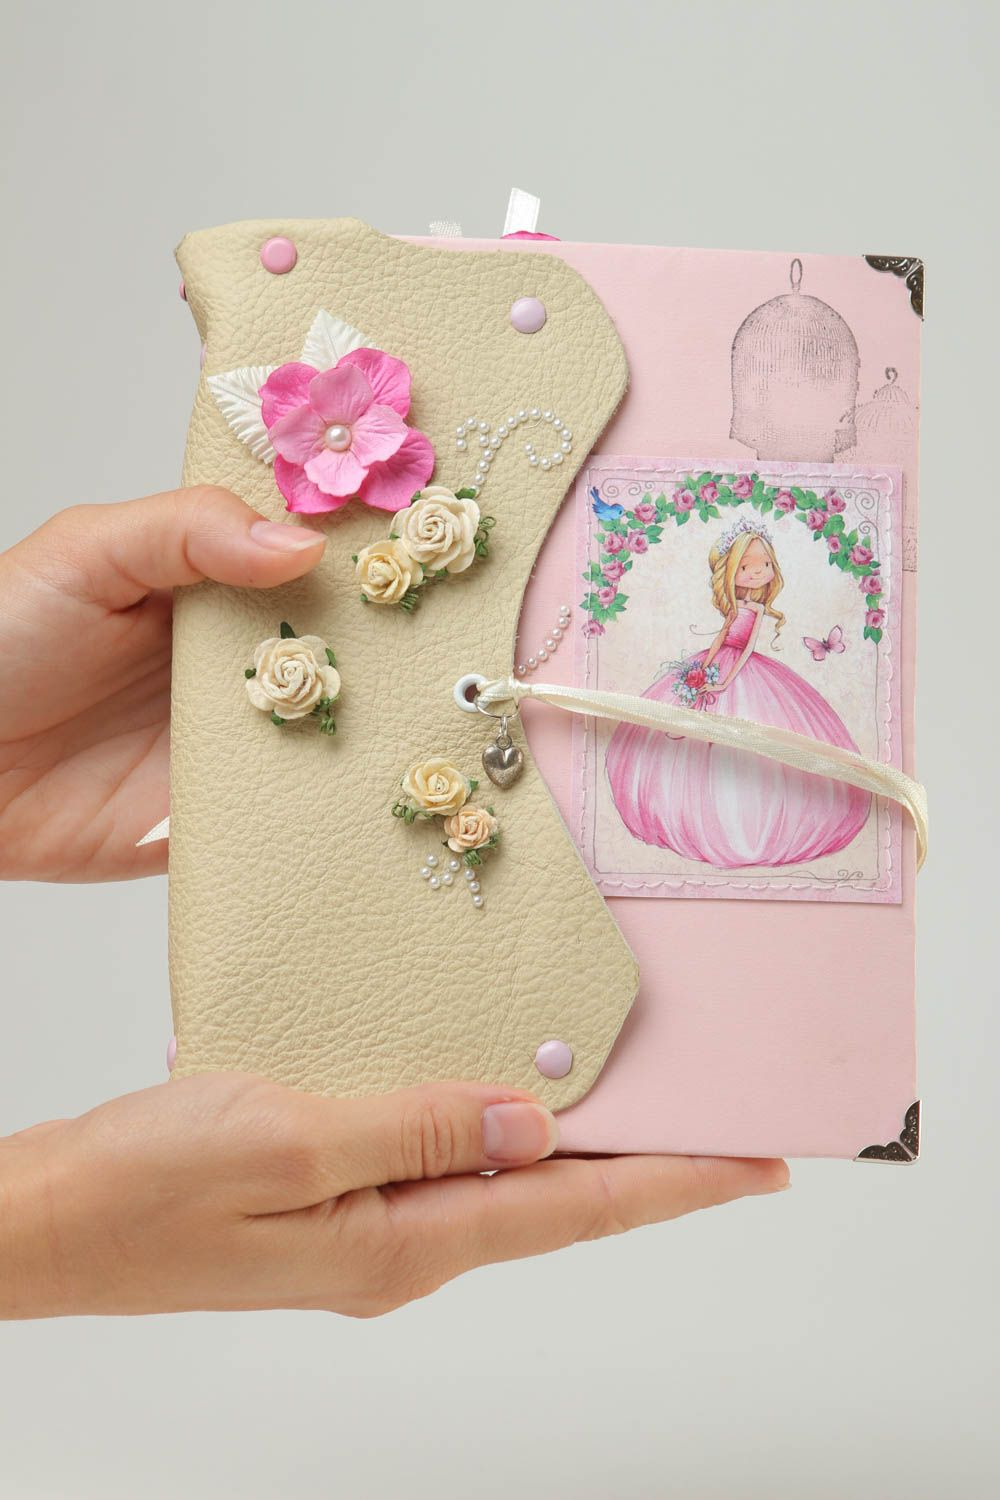 Unusual handmade photo album kids accessories album for newborns gift ideas photo 5